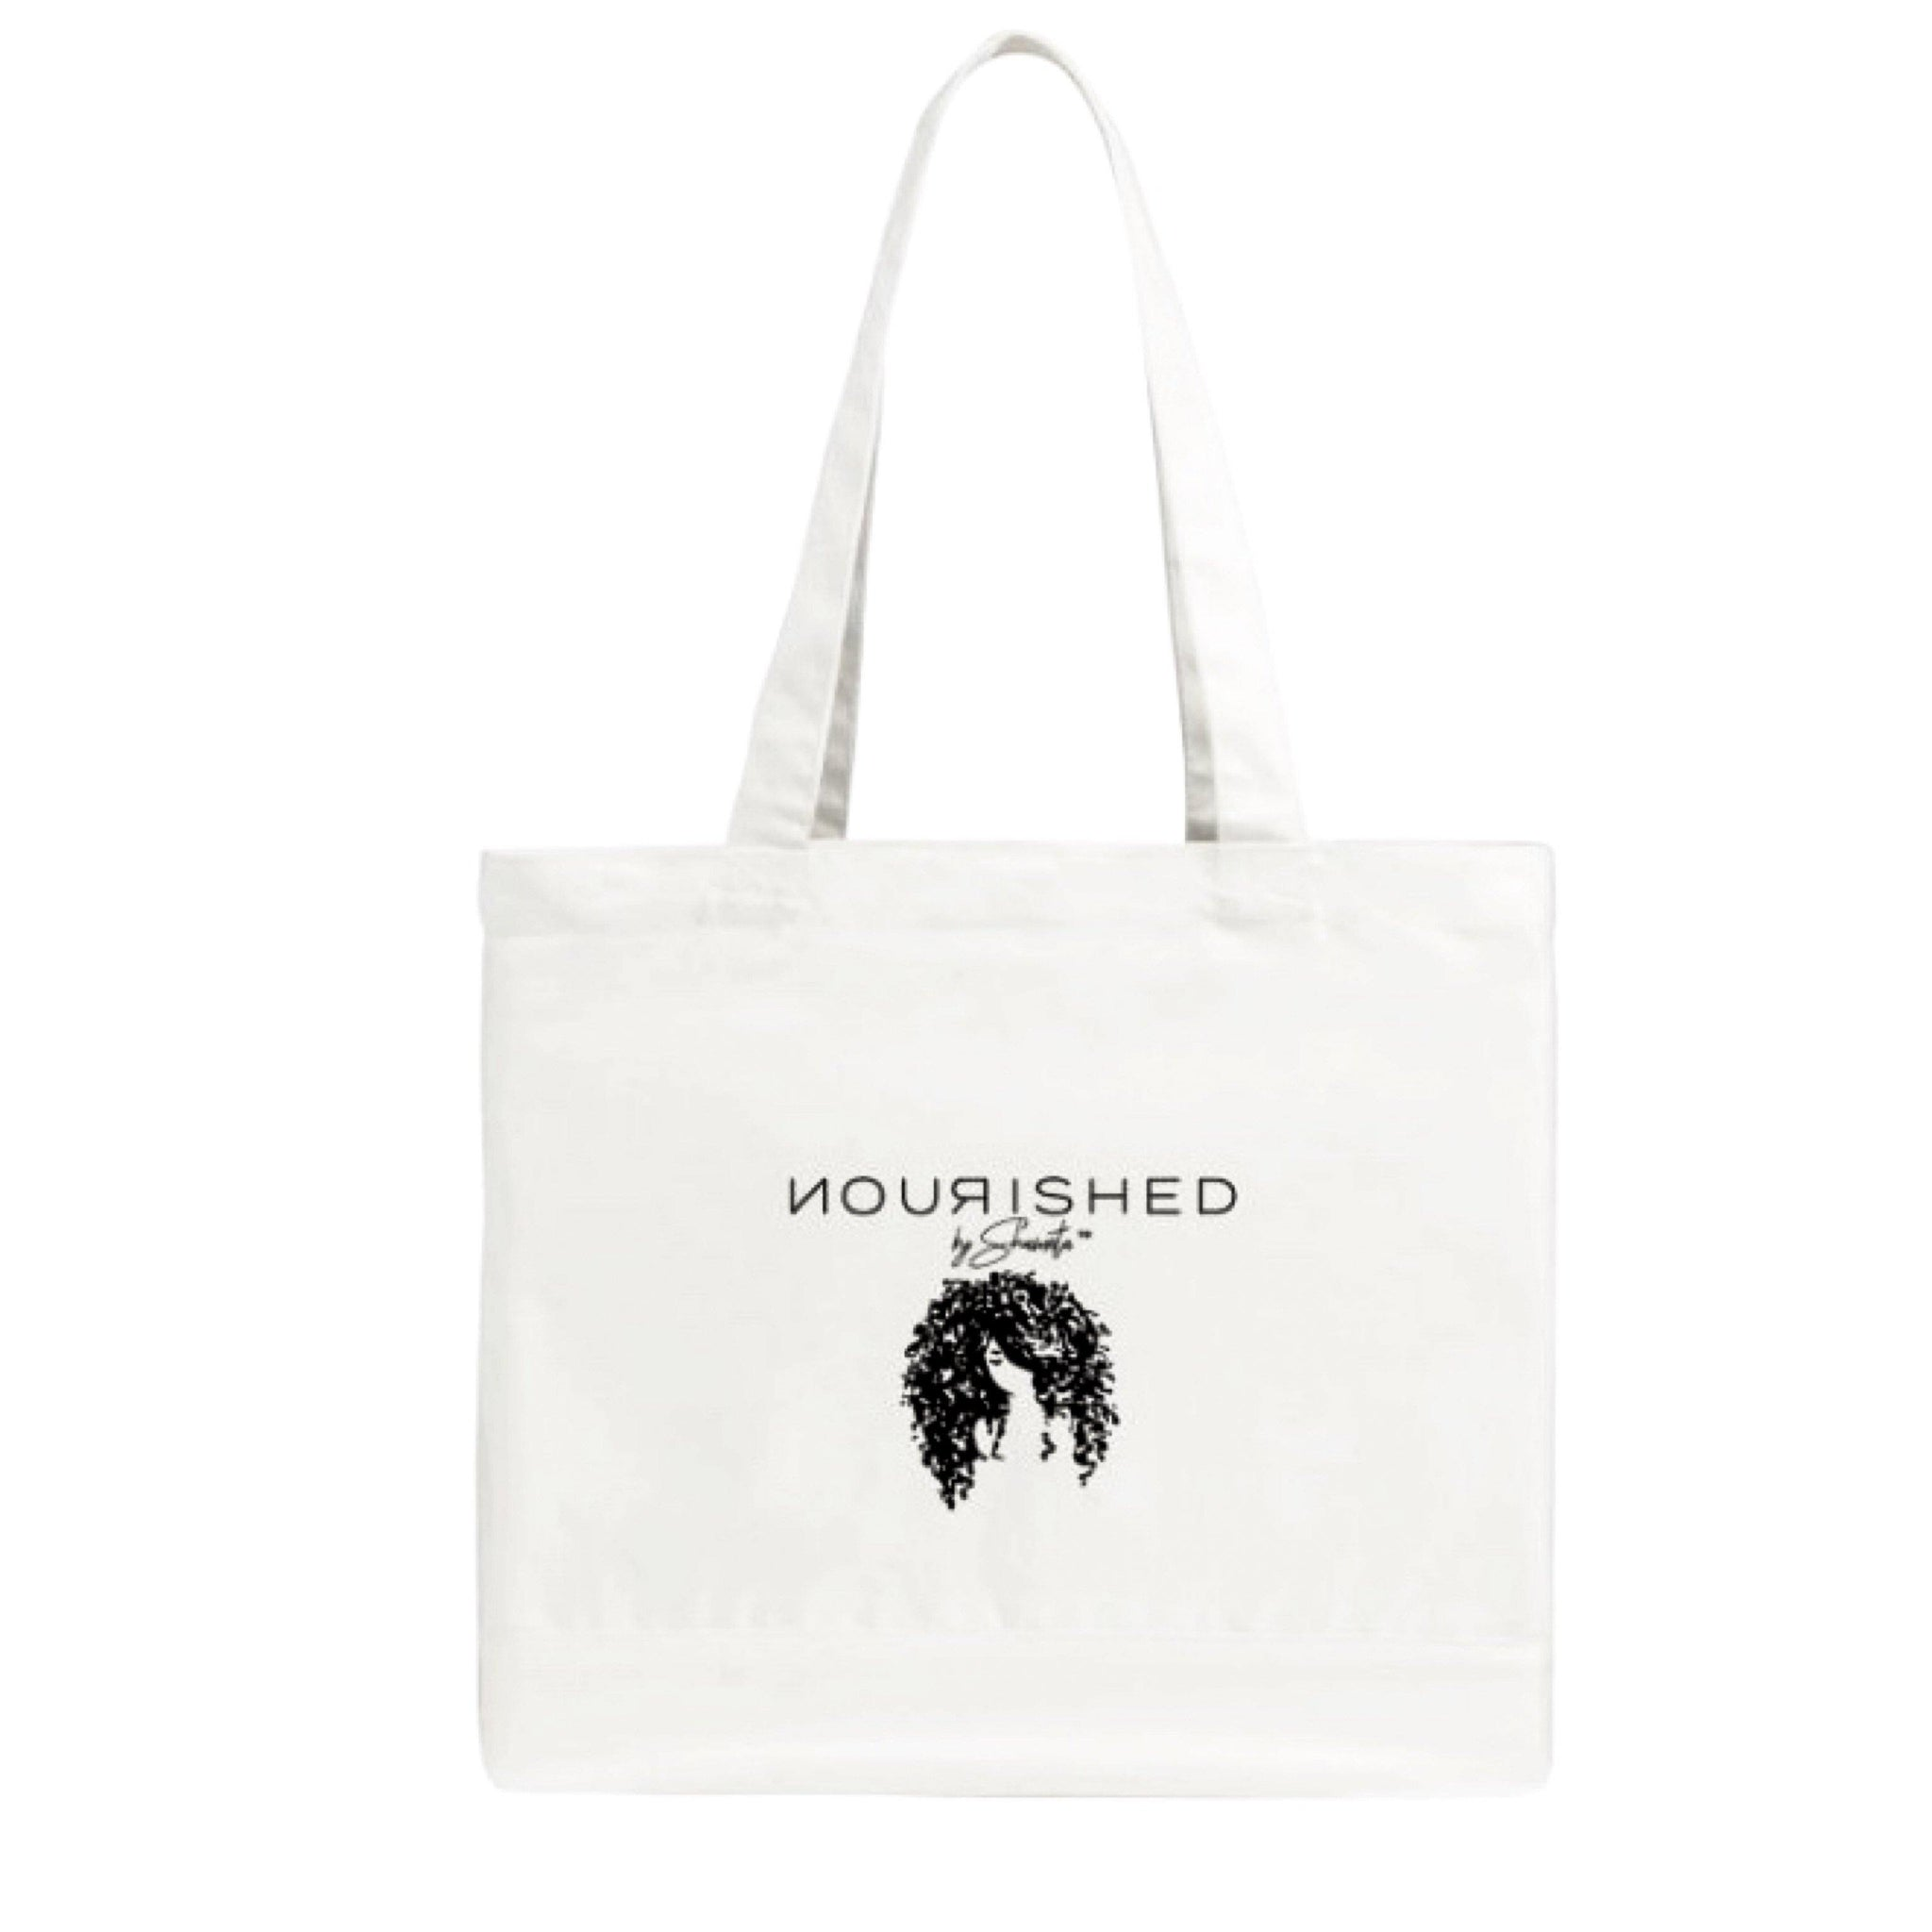 Nourished 100% Cotton Tote Bag